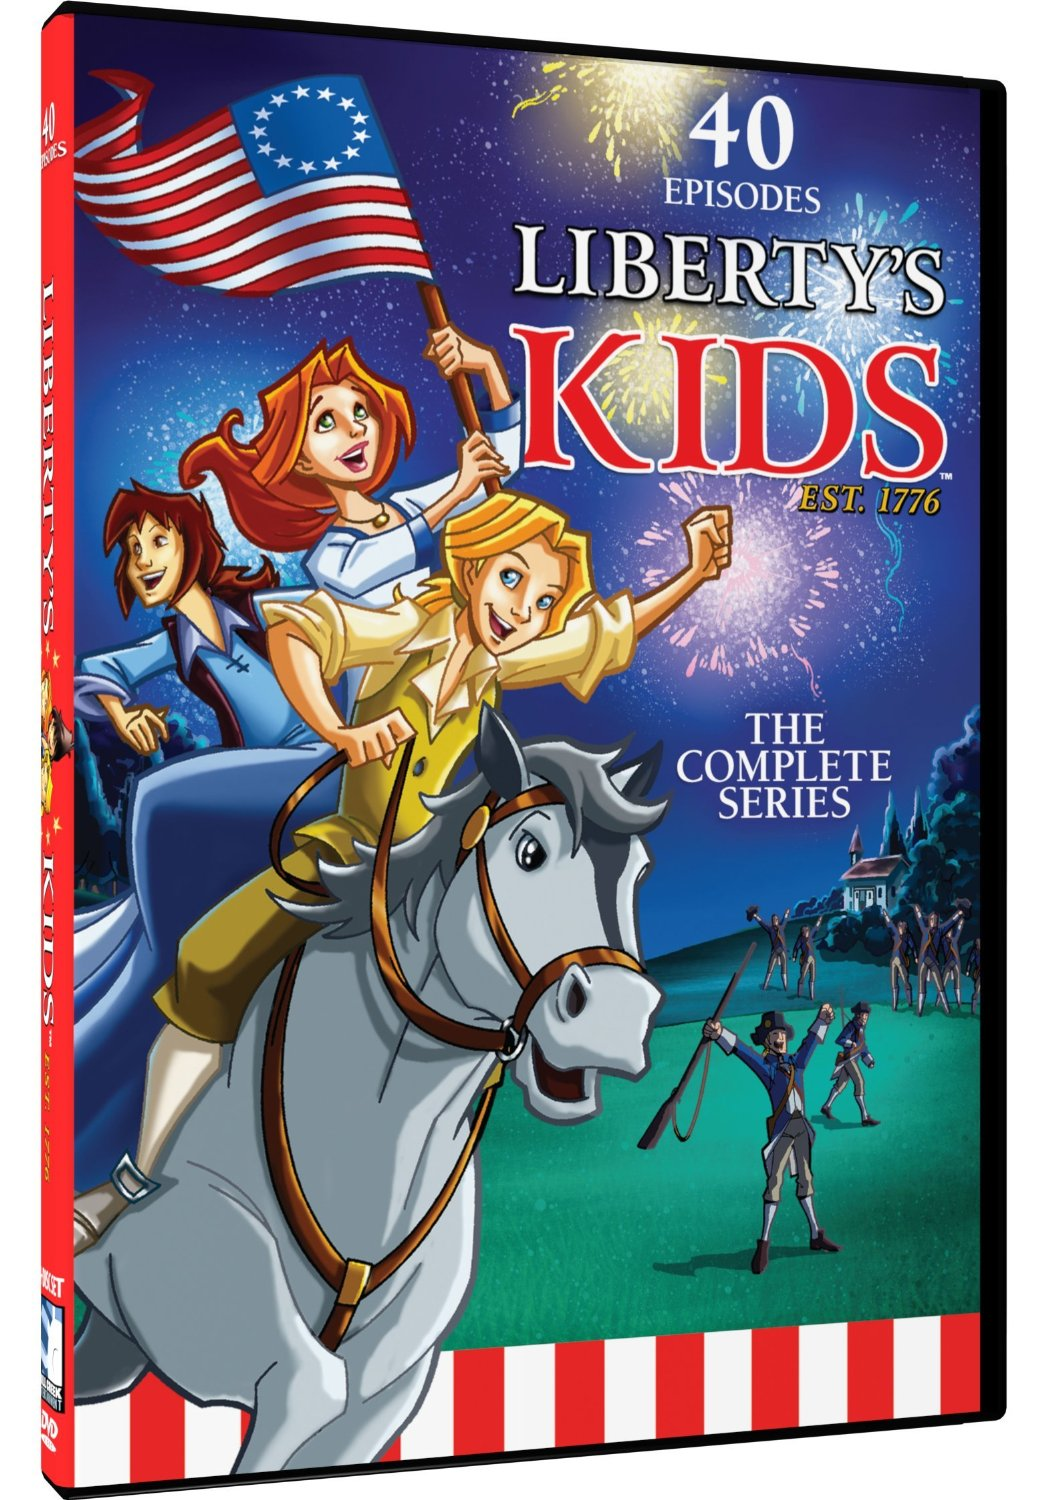 Liberty Kids Complete Series DVD Set Only $7.50! (42% Off!)